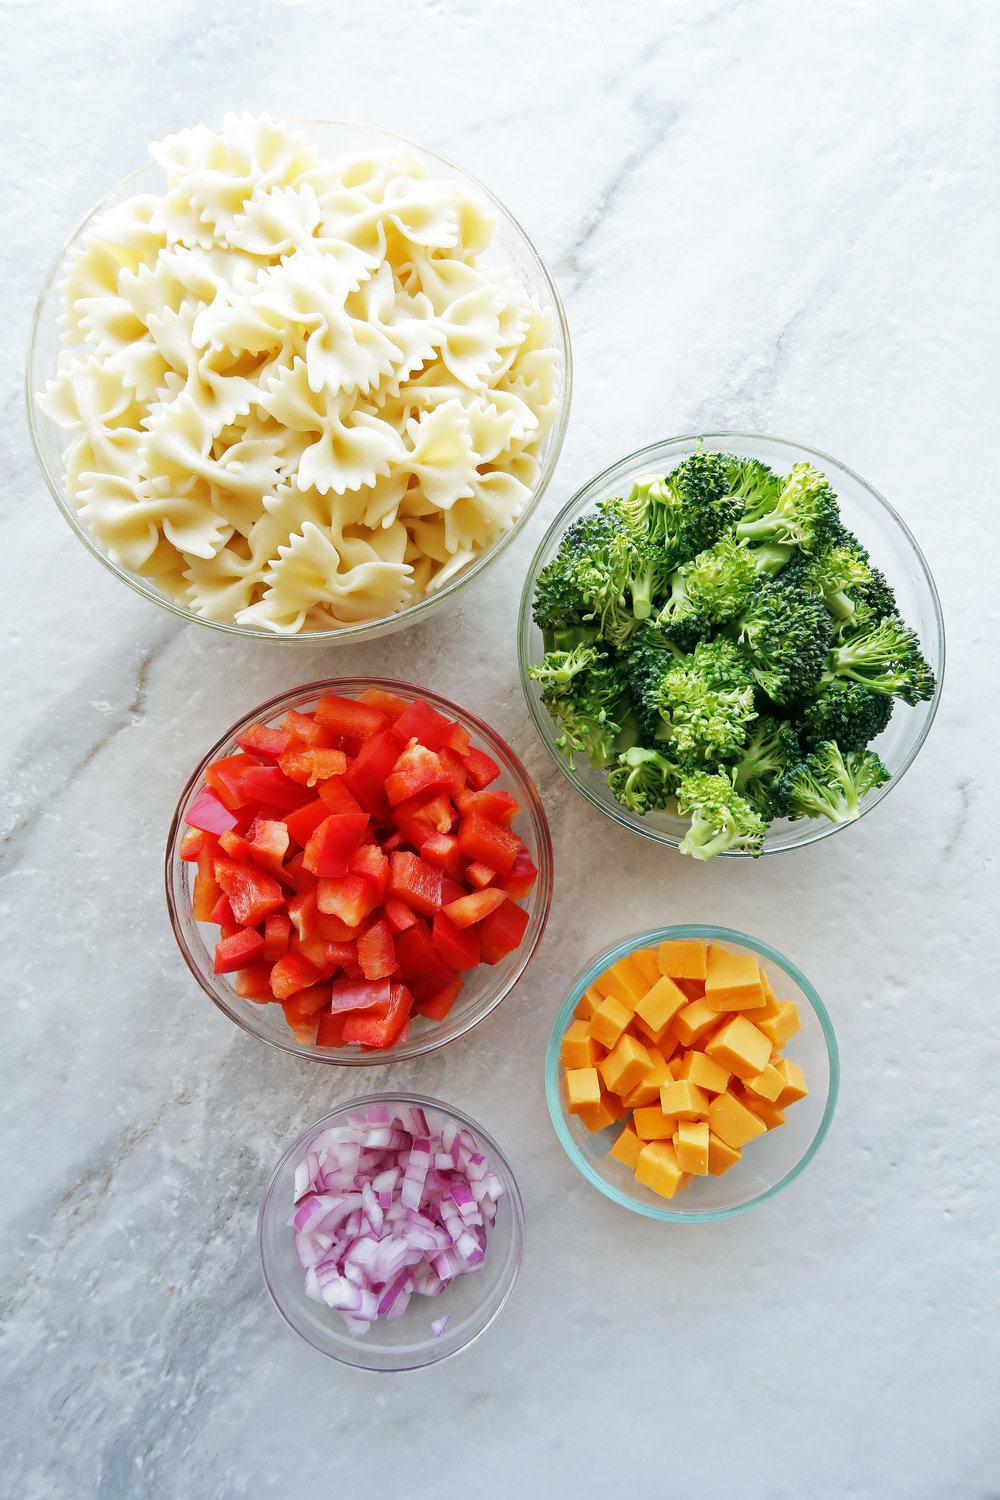 Bowls of bowtie pasta, broccoli, red bell peppers, cheddar cheese, and red onions.